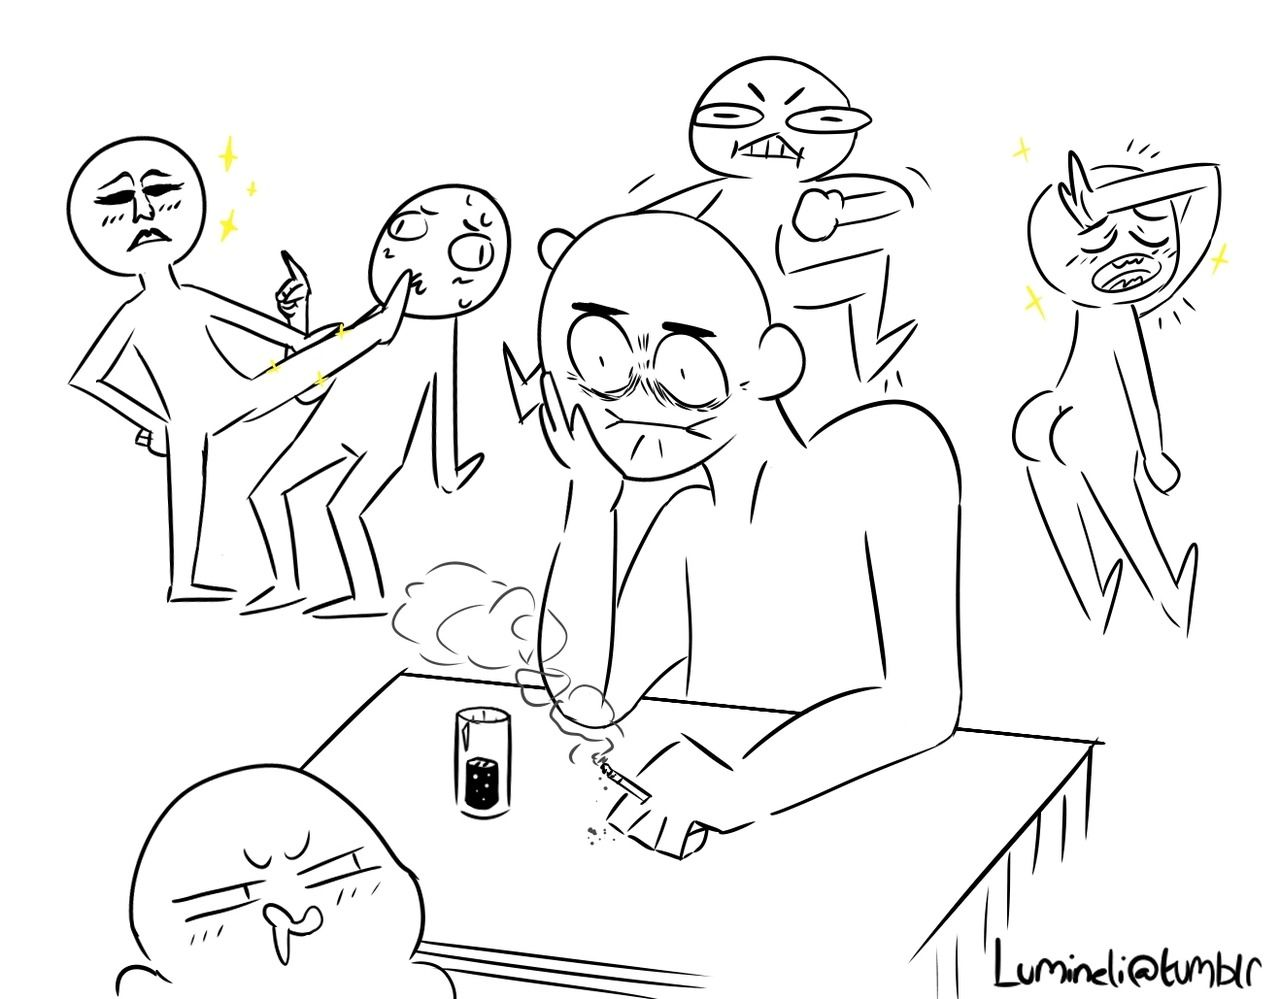 A Collection Of Art Memes Callenges Prompts And Tips I Personally Do Not Take Requests On This Blog I M Op Drawing Meme Funny Drawings Drawings Of Friends